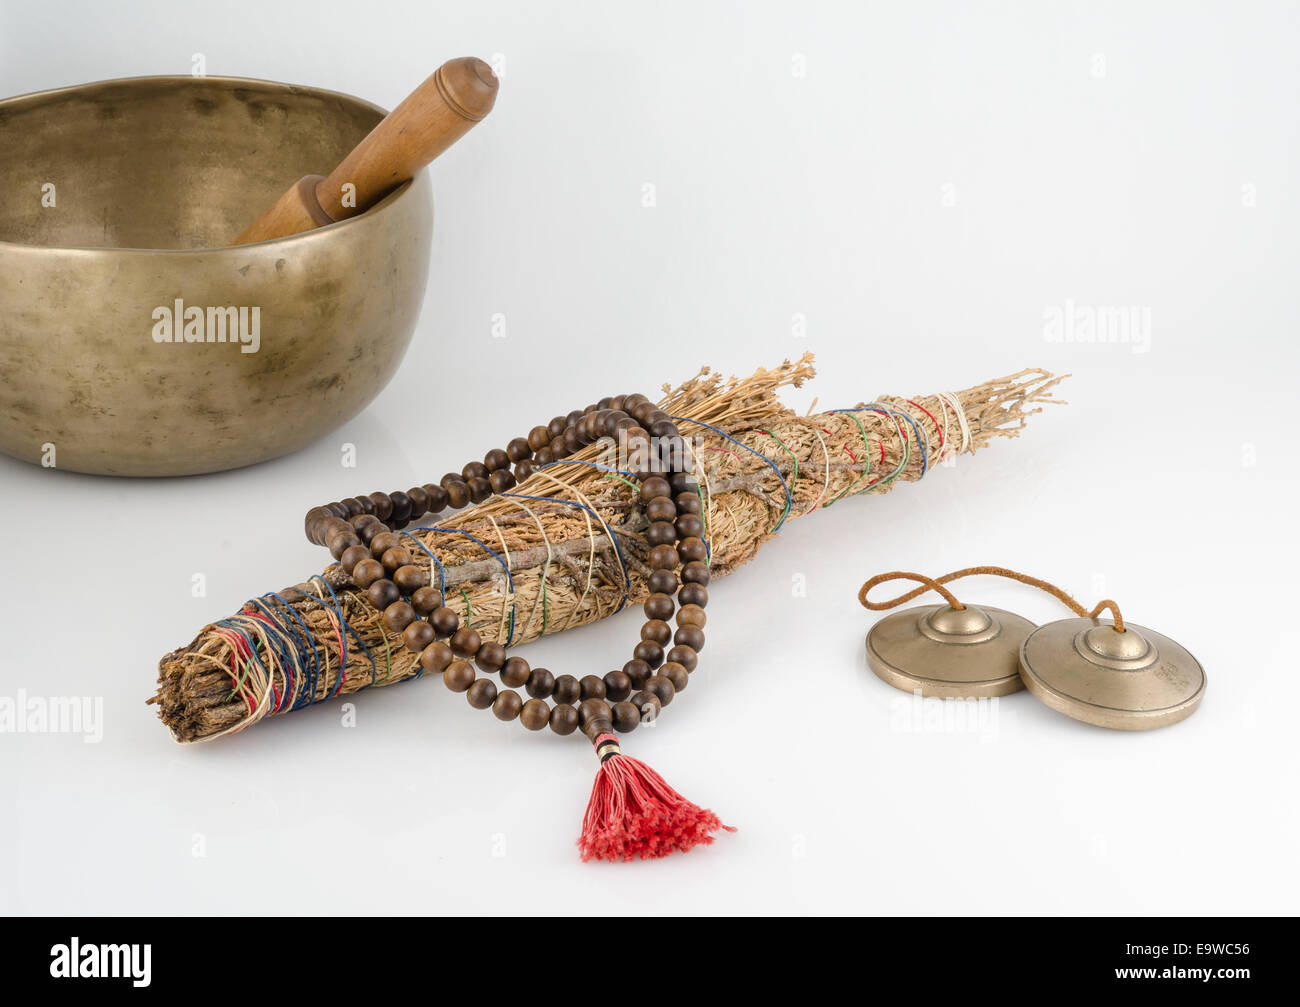 Hand Made Singing Bowl with Ringing Stick, Prayer Beads, Meditation Bells and Smudge Stick. - Stock Image